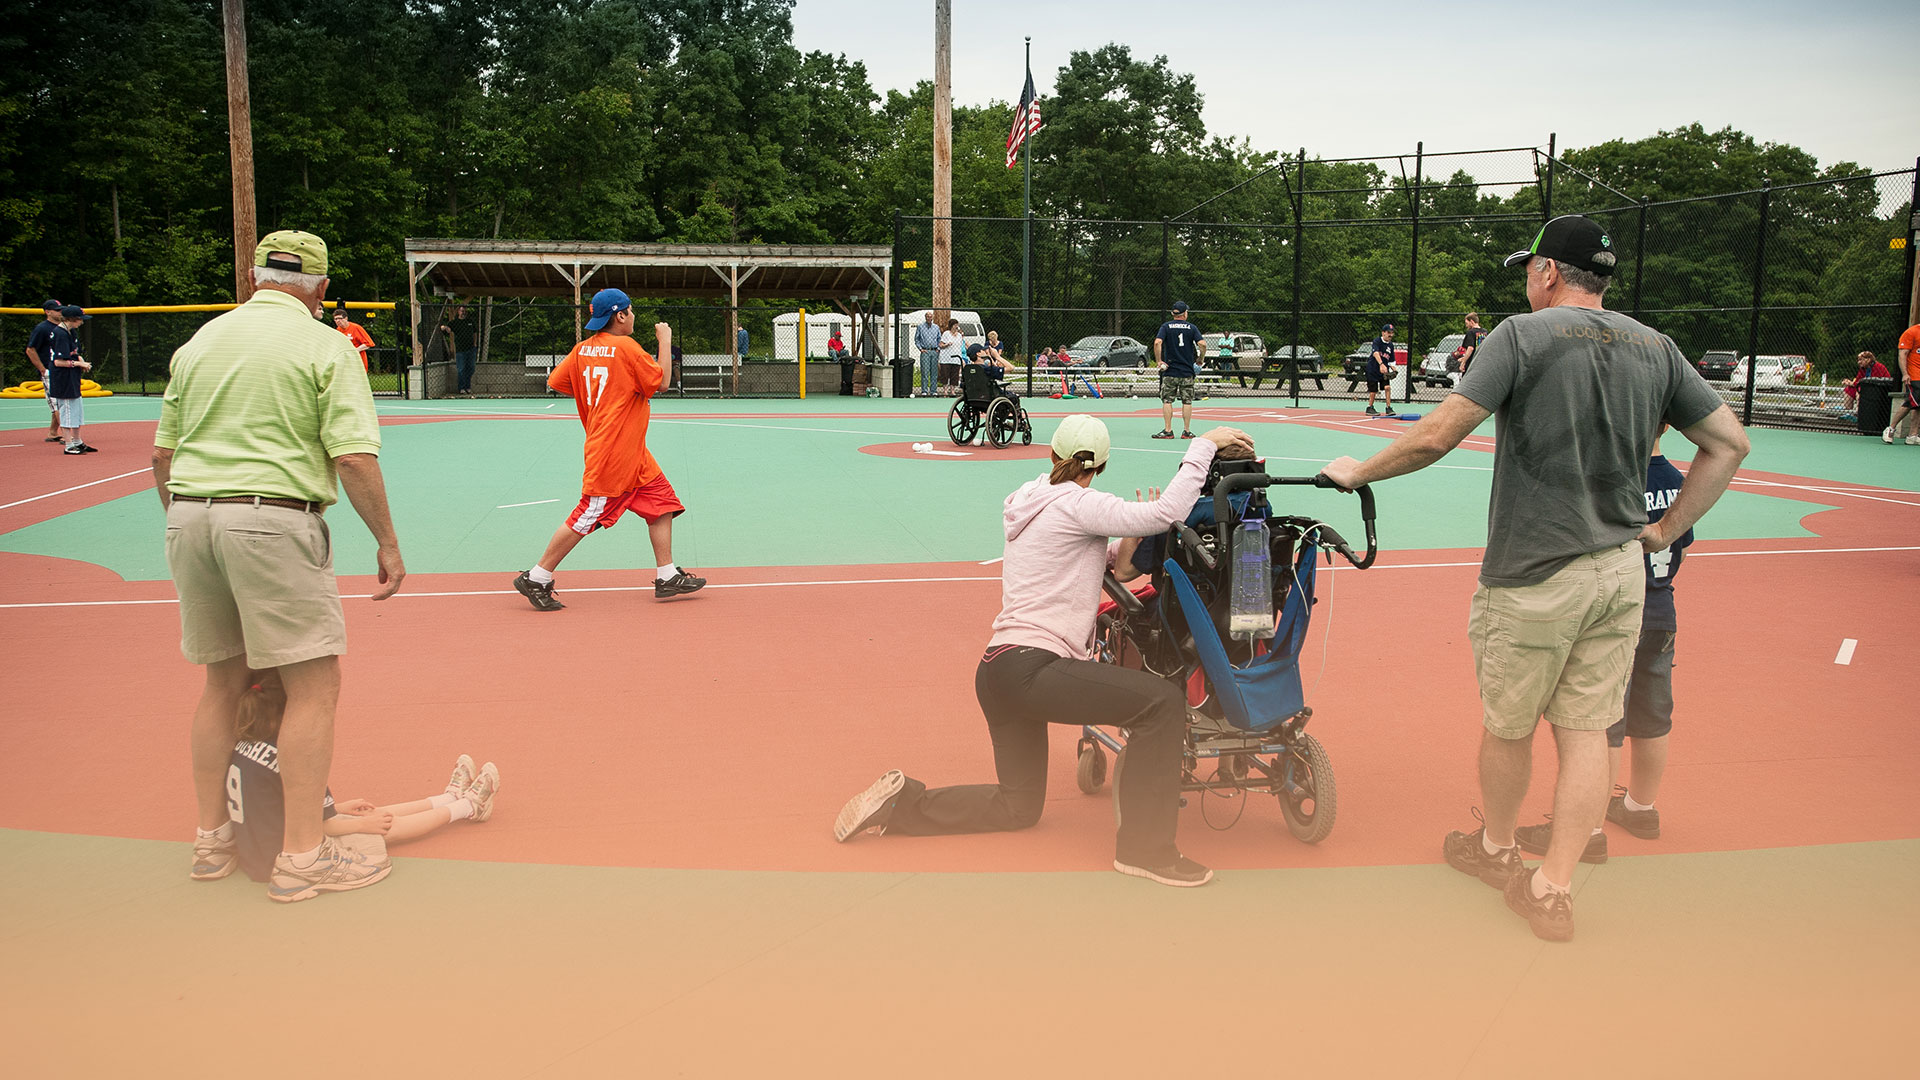 Miracle League Playing Baseball on Field